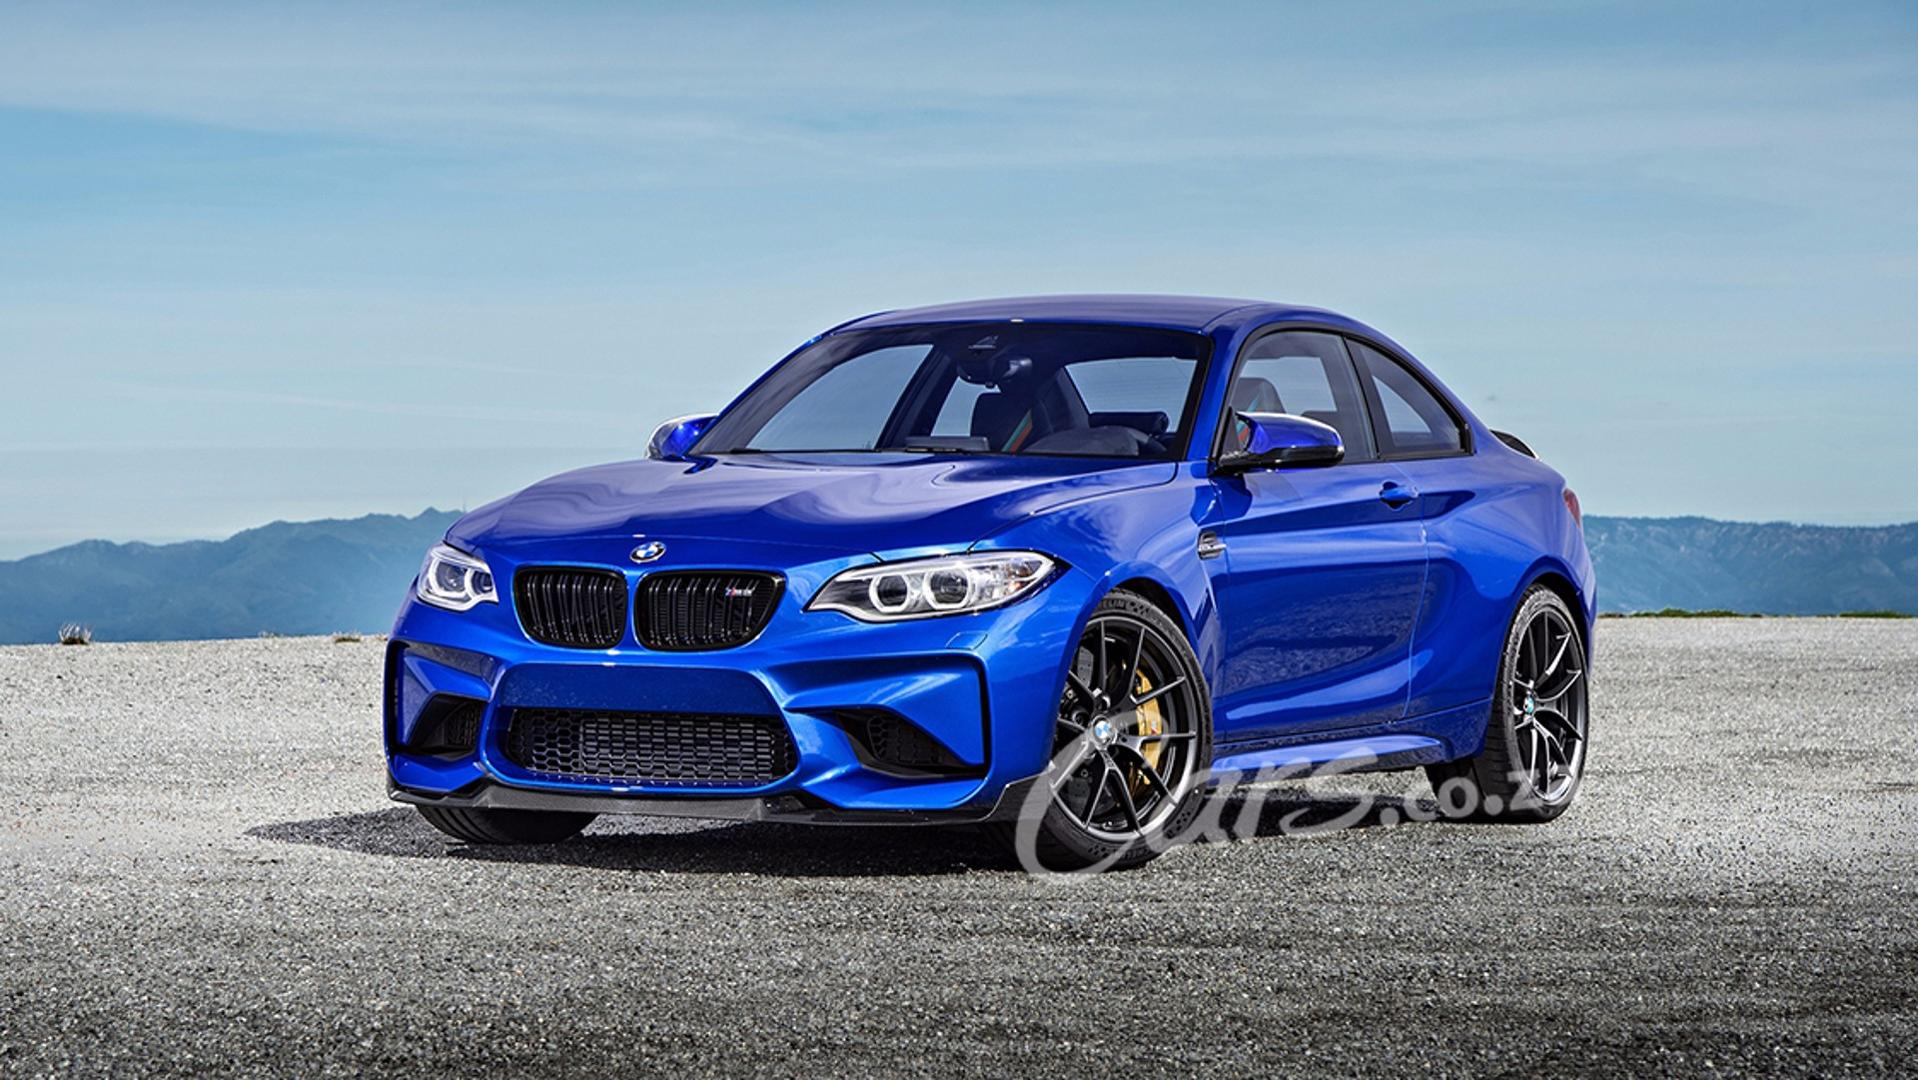 bmw m2 cs details emerge to reveal only 1 000 units will. Black Bedroom Furniture Sets. Home Design Ideas